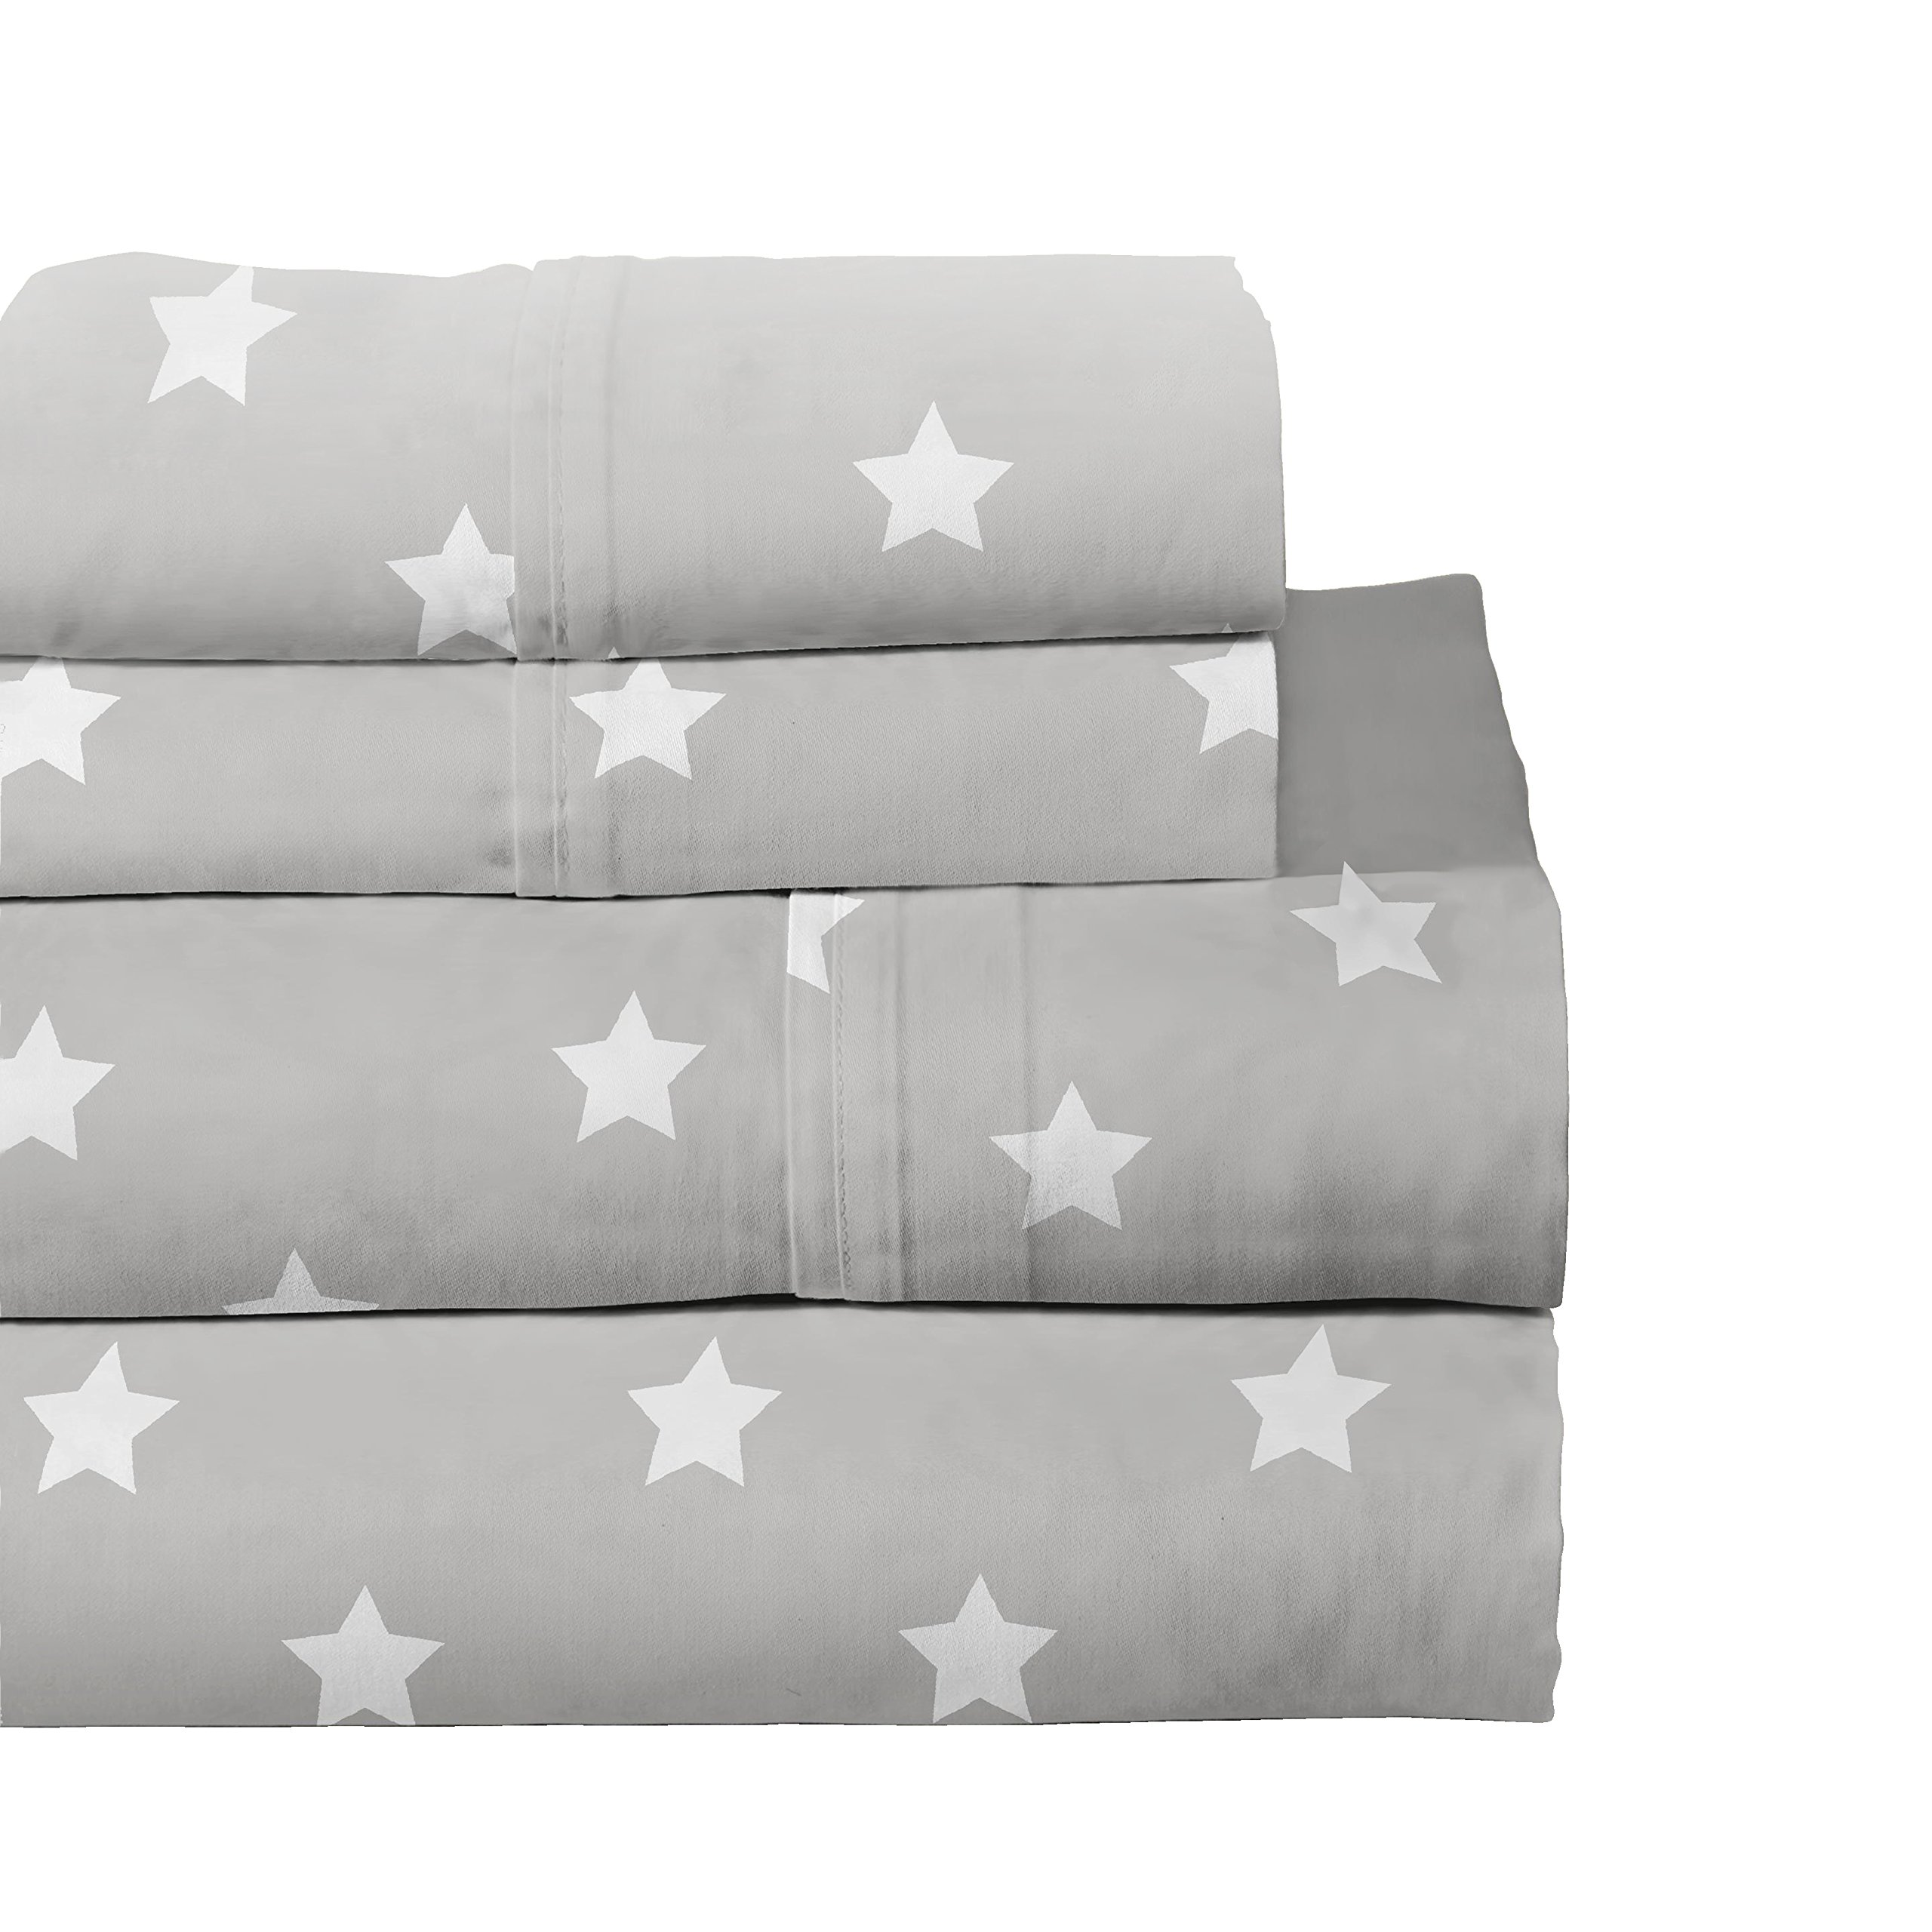 Lullaby Bedding 200-YSPACE Space Collection Toddler Cotton Printed Sheet Set